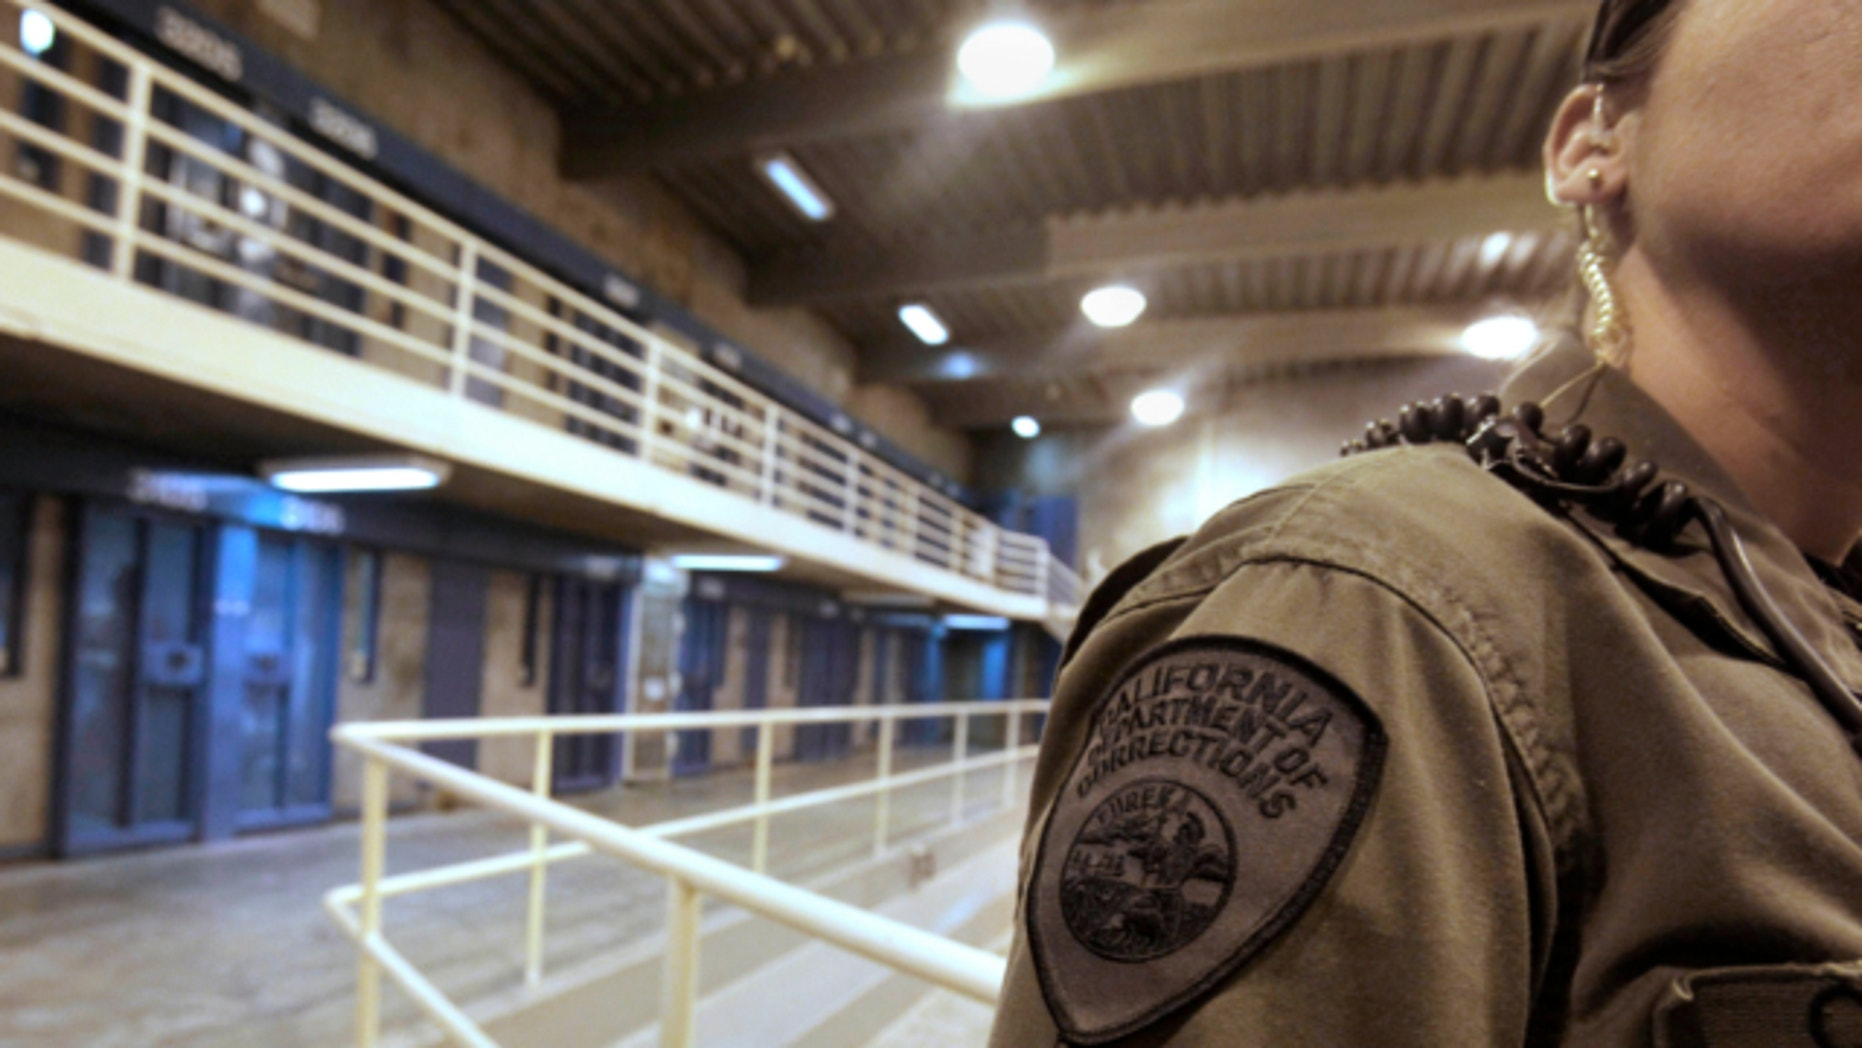 Aug. 17, 2011: A correctional officer is seen in one of the housing units at Pelican Bay State Prison near Crescent City, Calif.